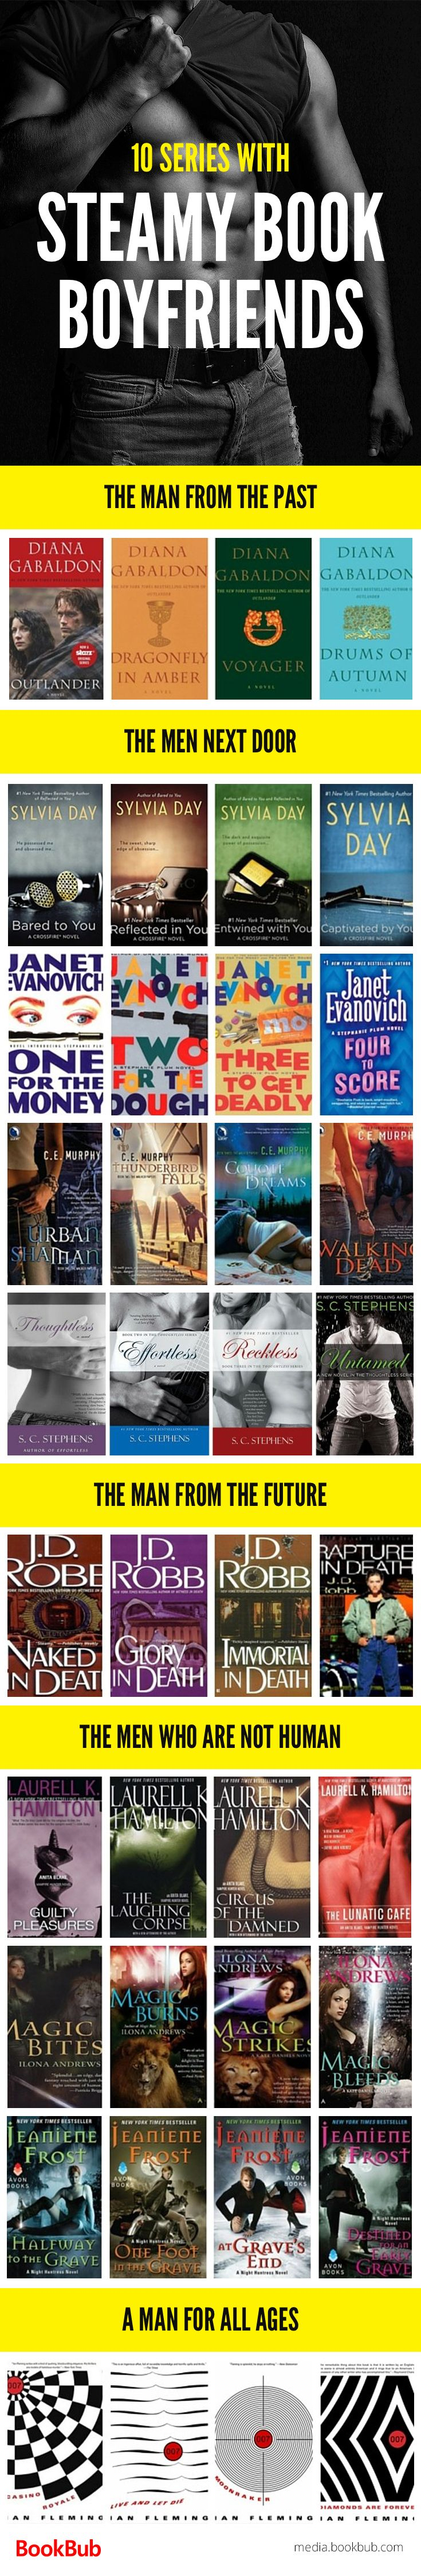 Check out our steamy books boyfriend list, featuring steamy romance series and some of the best fictional characters.